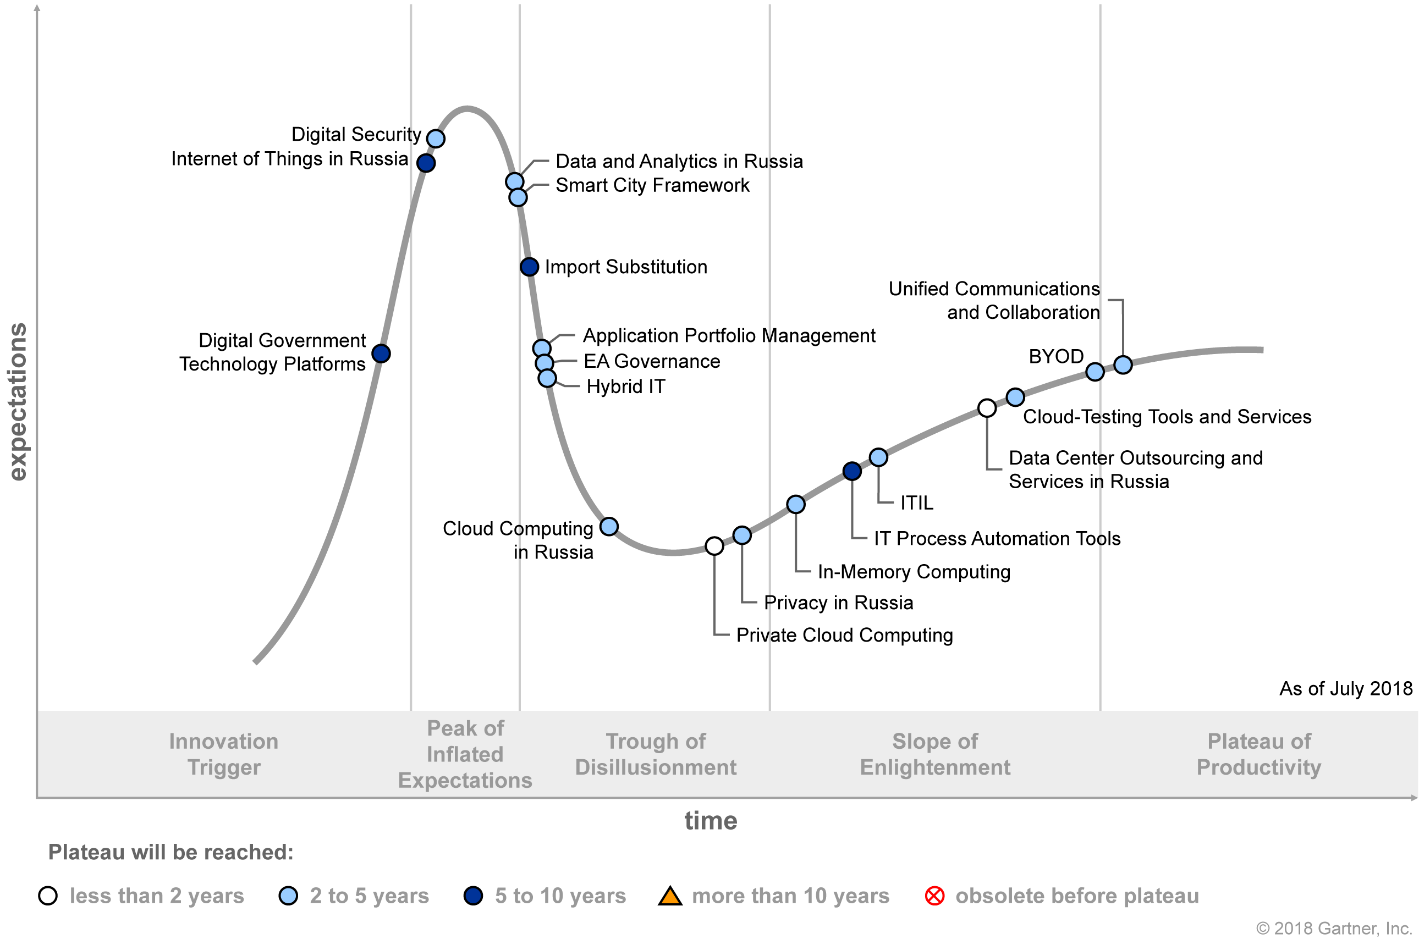 Hype Cycle for ICT in Russia 2018 (G00340593)